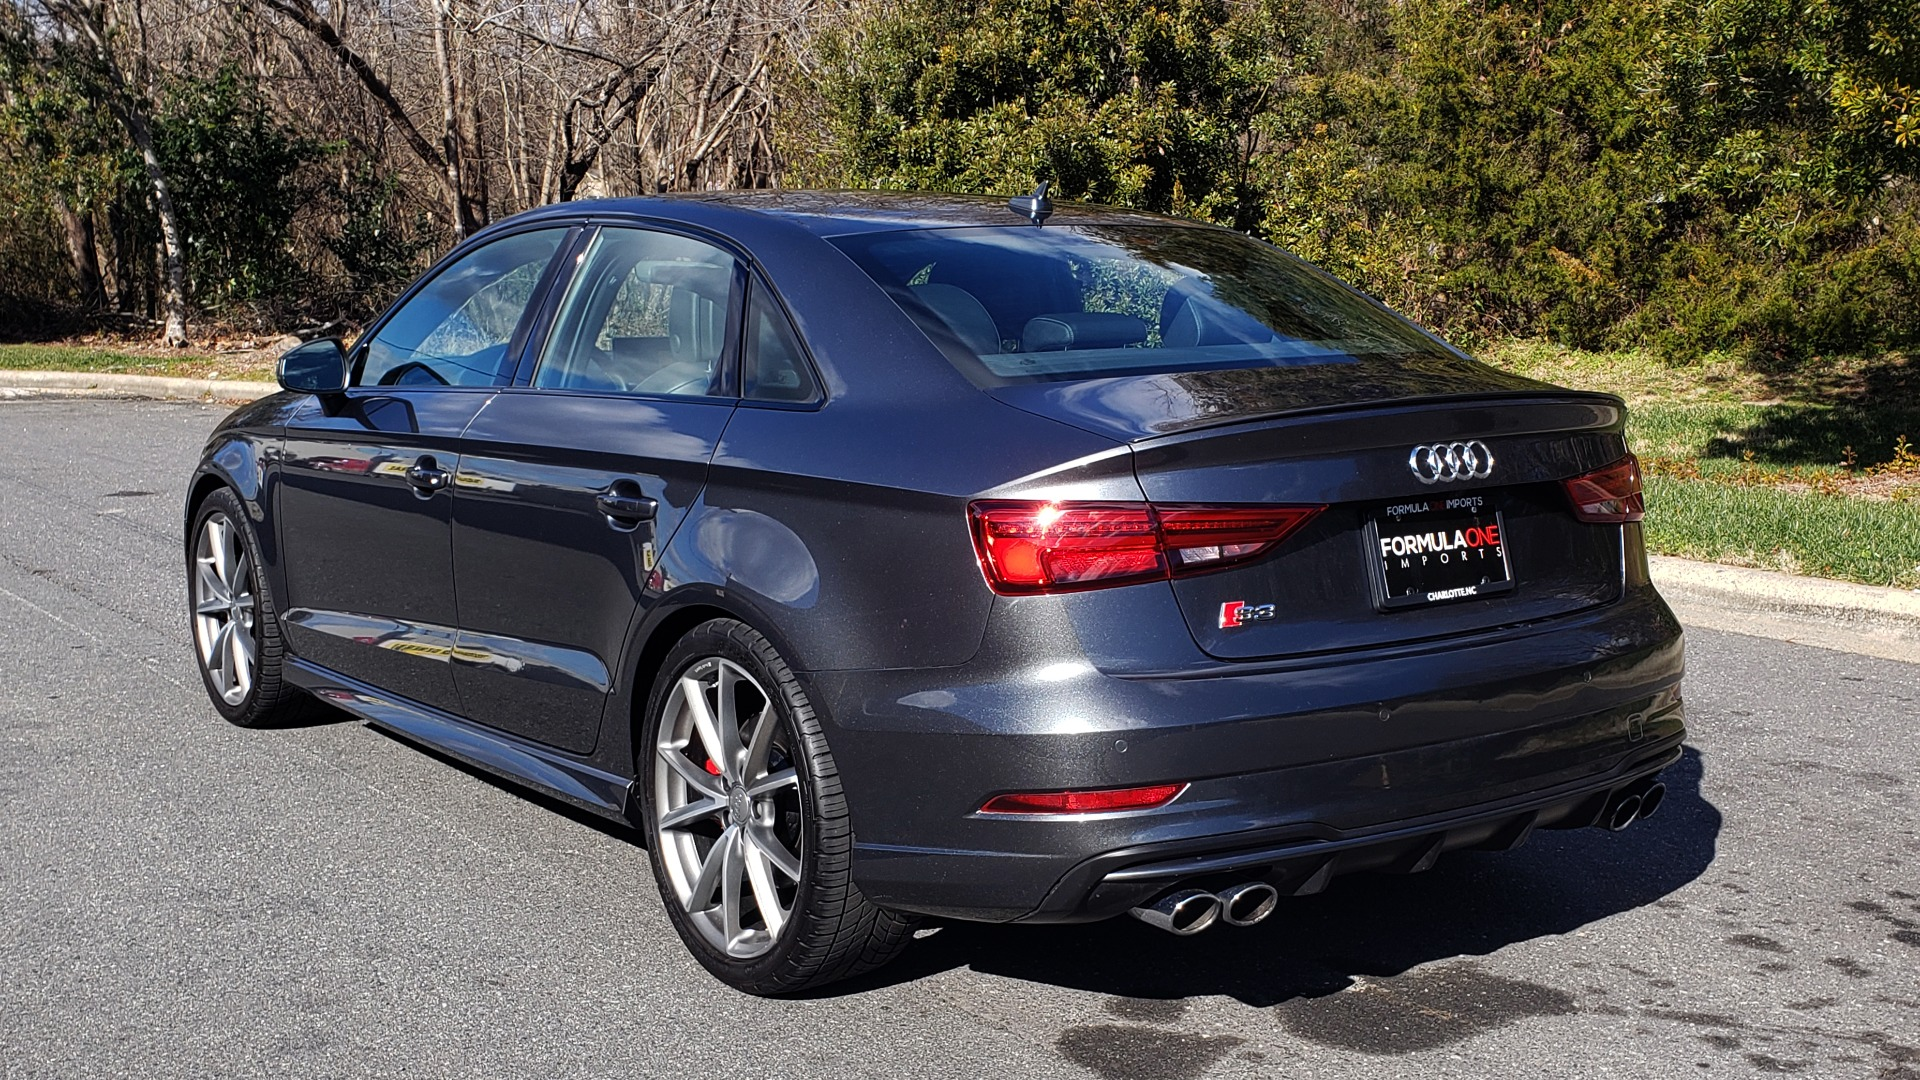 Used 2018 Audi S3 PREMIUM PLUS / TECH / NAV / BLACK OPTIC / S-SPORT / REARVIEW for sale $32,995 at Formula Imports in Charlotte NC 28227 3